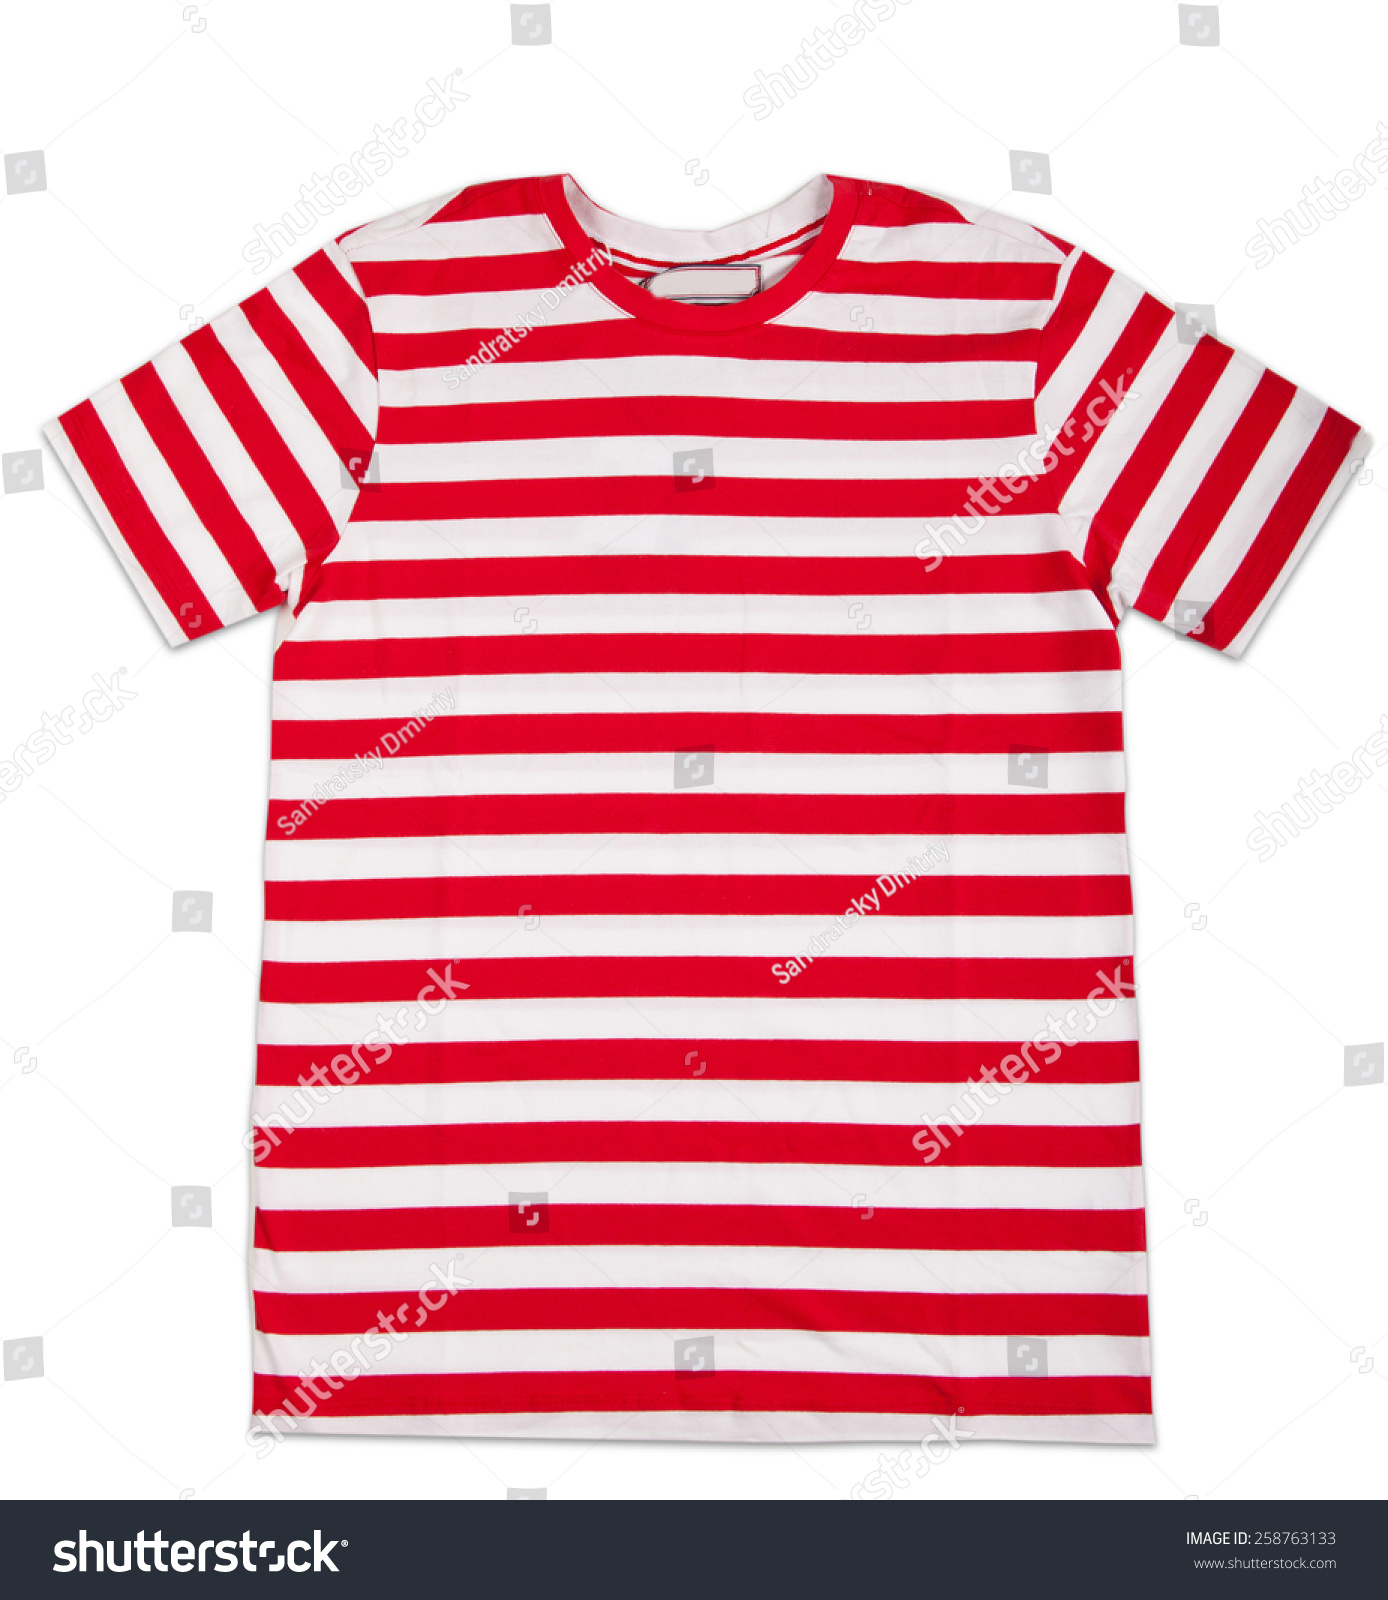 Red Stripes Tshirt Template Isolated On White T Shirt Template